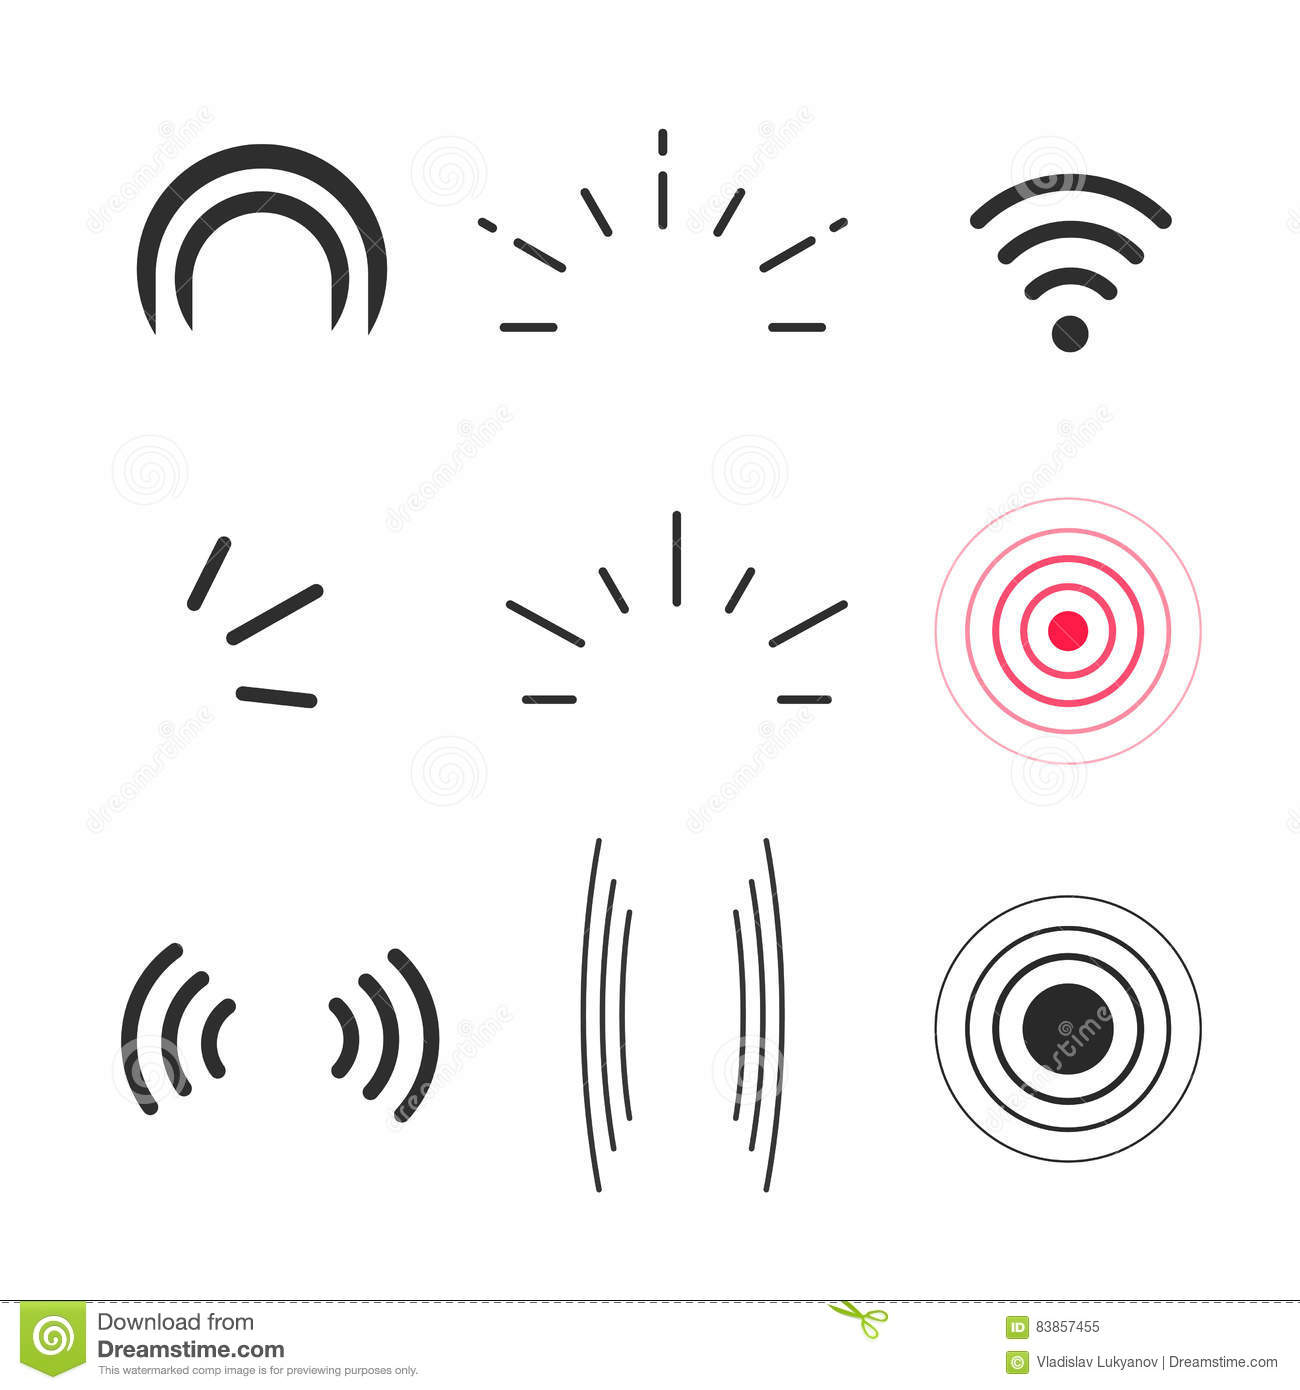 Radio Signal For Line Wiring Diagrams Transistor Curve Tracer Circuit Diagram Tradeoficcom Icons Vector Signals Waves And Light Rays Symbols Rh Dreamstime Com Icon